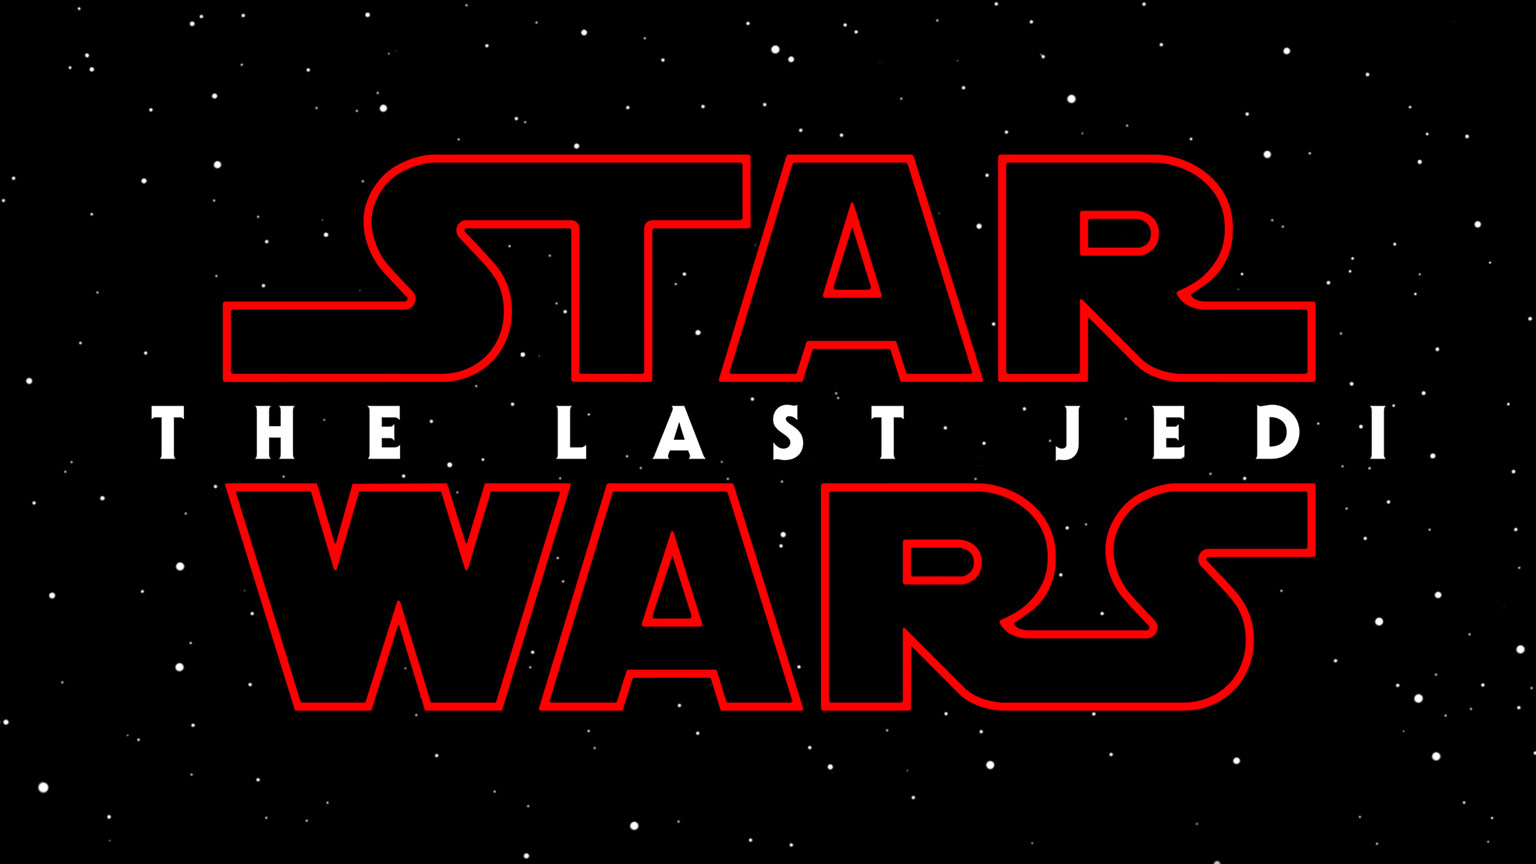 Film Star Wars The Last Jedi